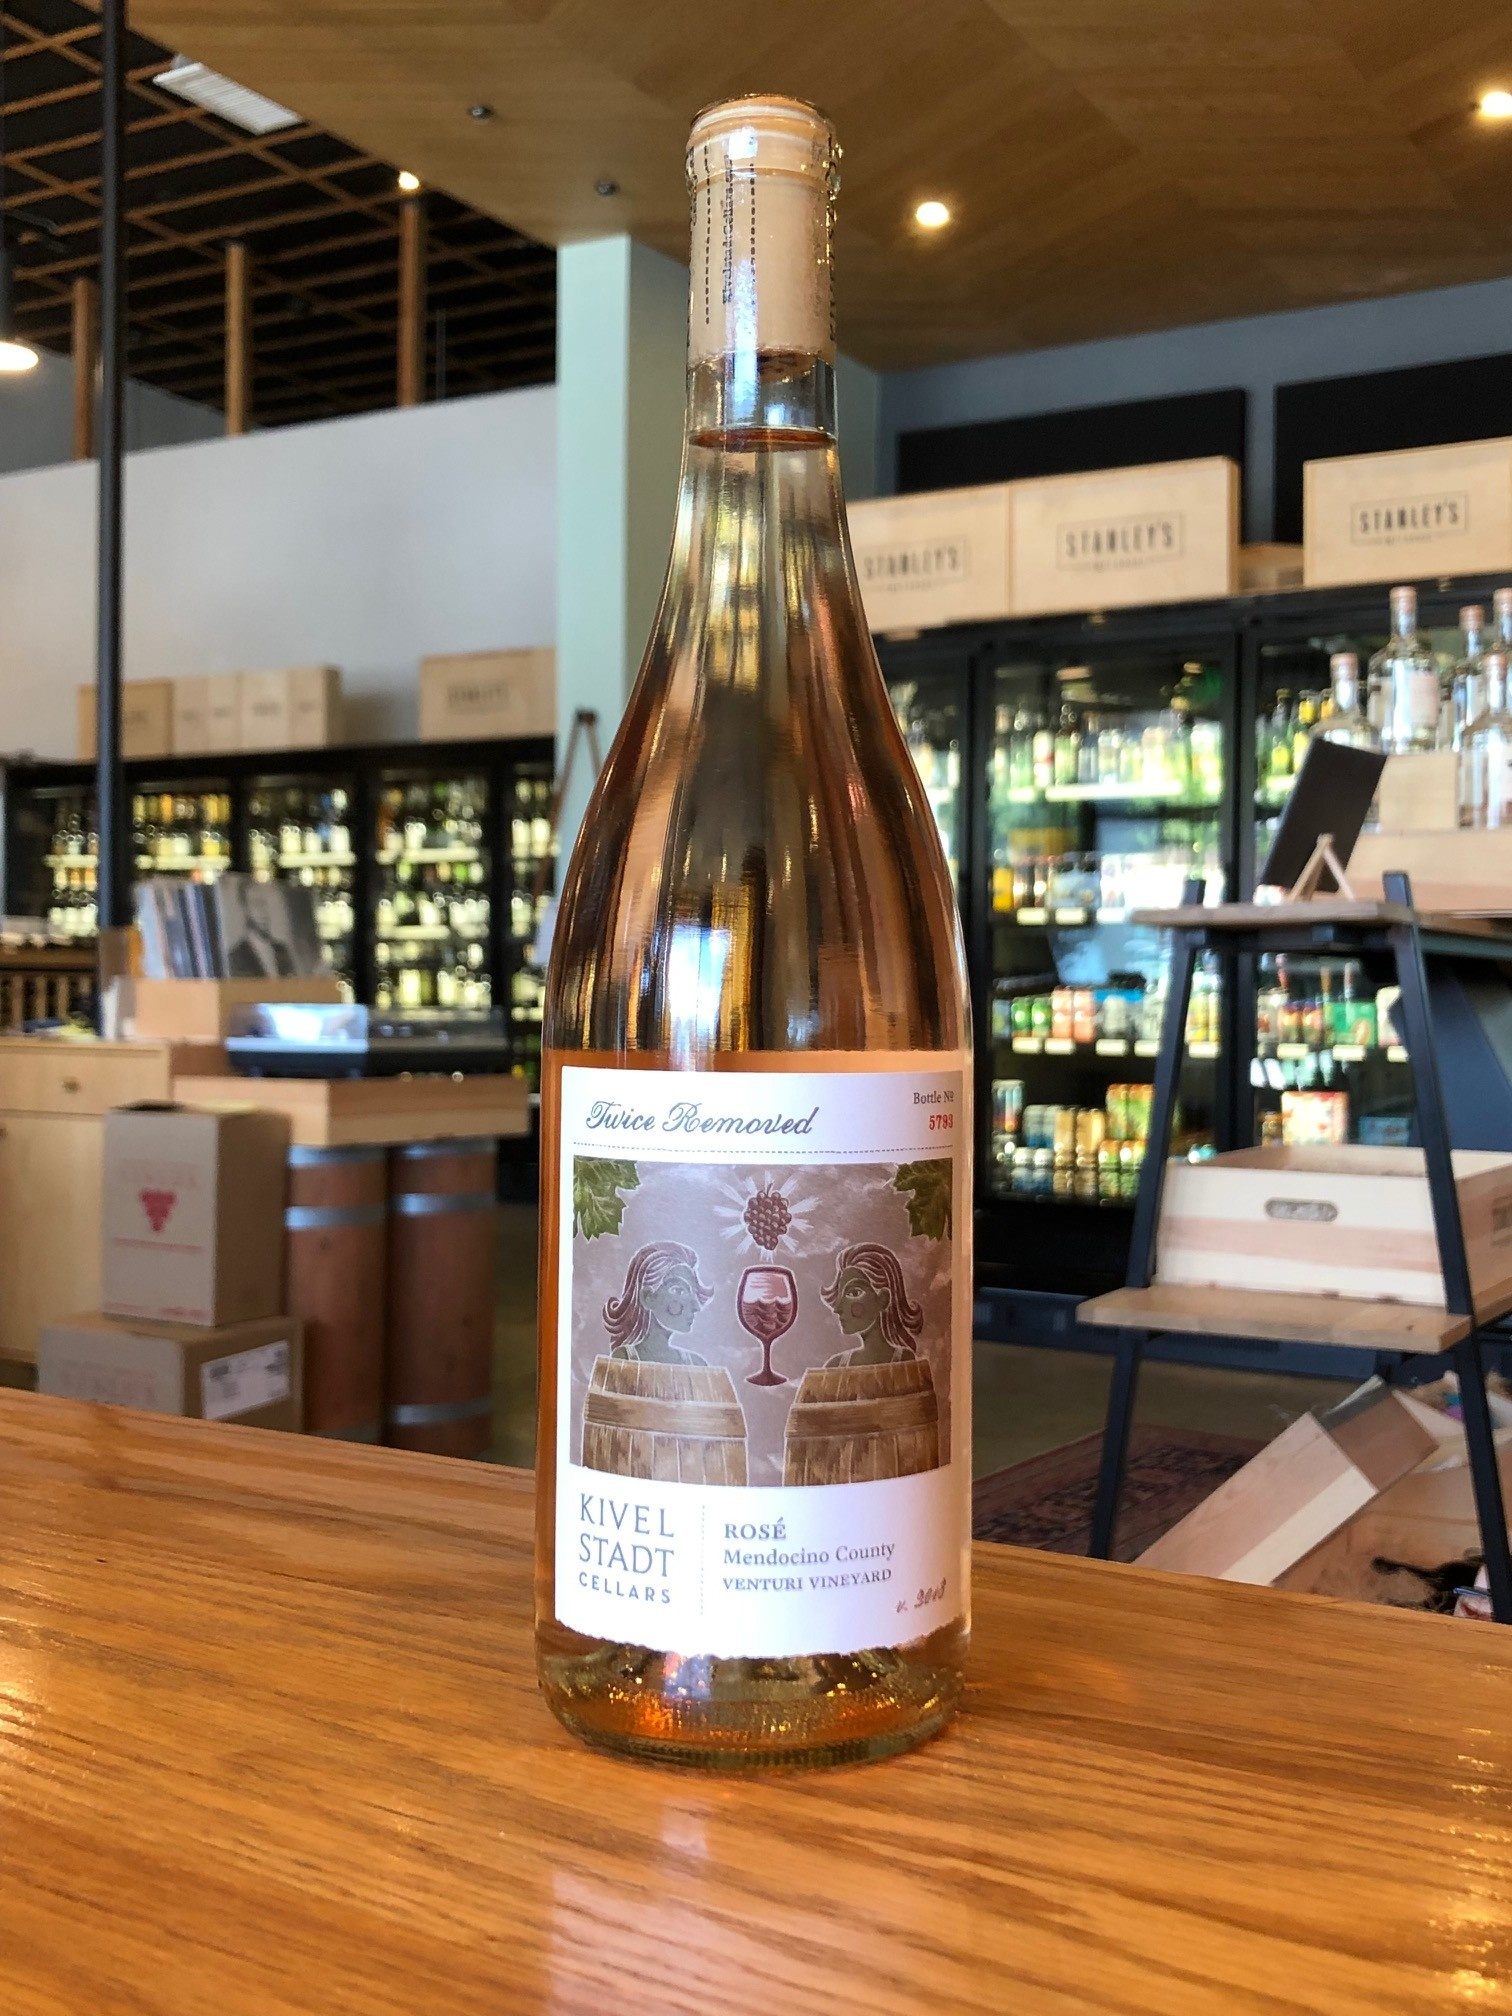 Kivelkstadt Winery 2018 Kivelstadt 'Twice Removed' Rosé 750ml